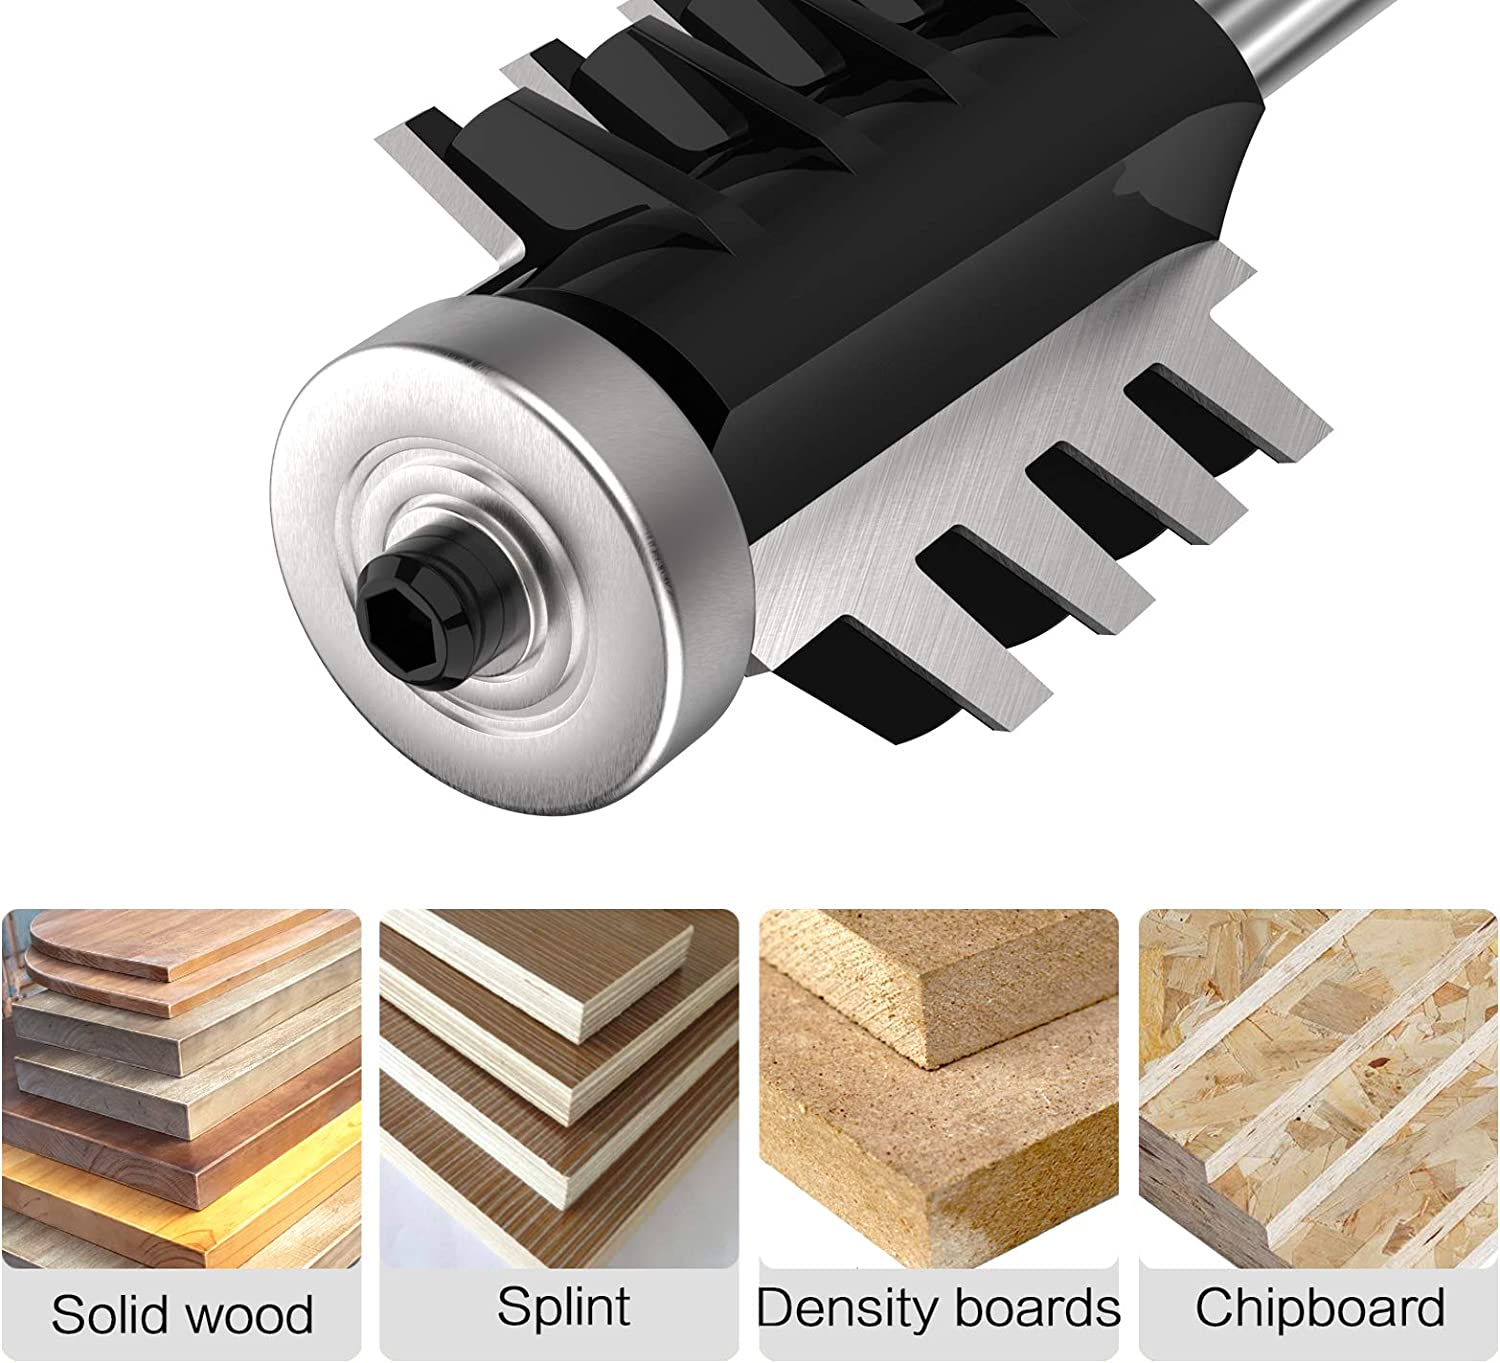 SUSOTA Finger Joint Router Bit with 1//4 Shank 1-1//2 Inch Cut Heigth 5//16 Inch Depth of blade Reversible Finger Joint Glue Joint Router Bit Woodworking Tool